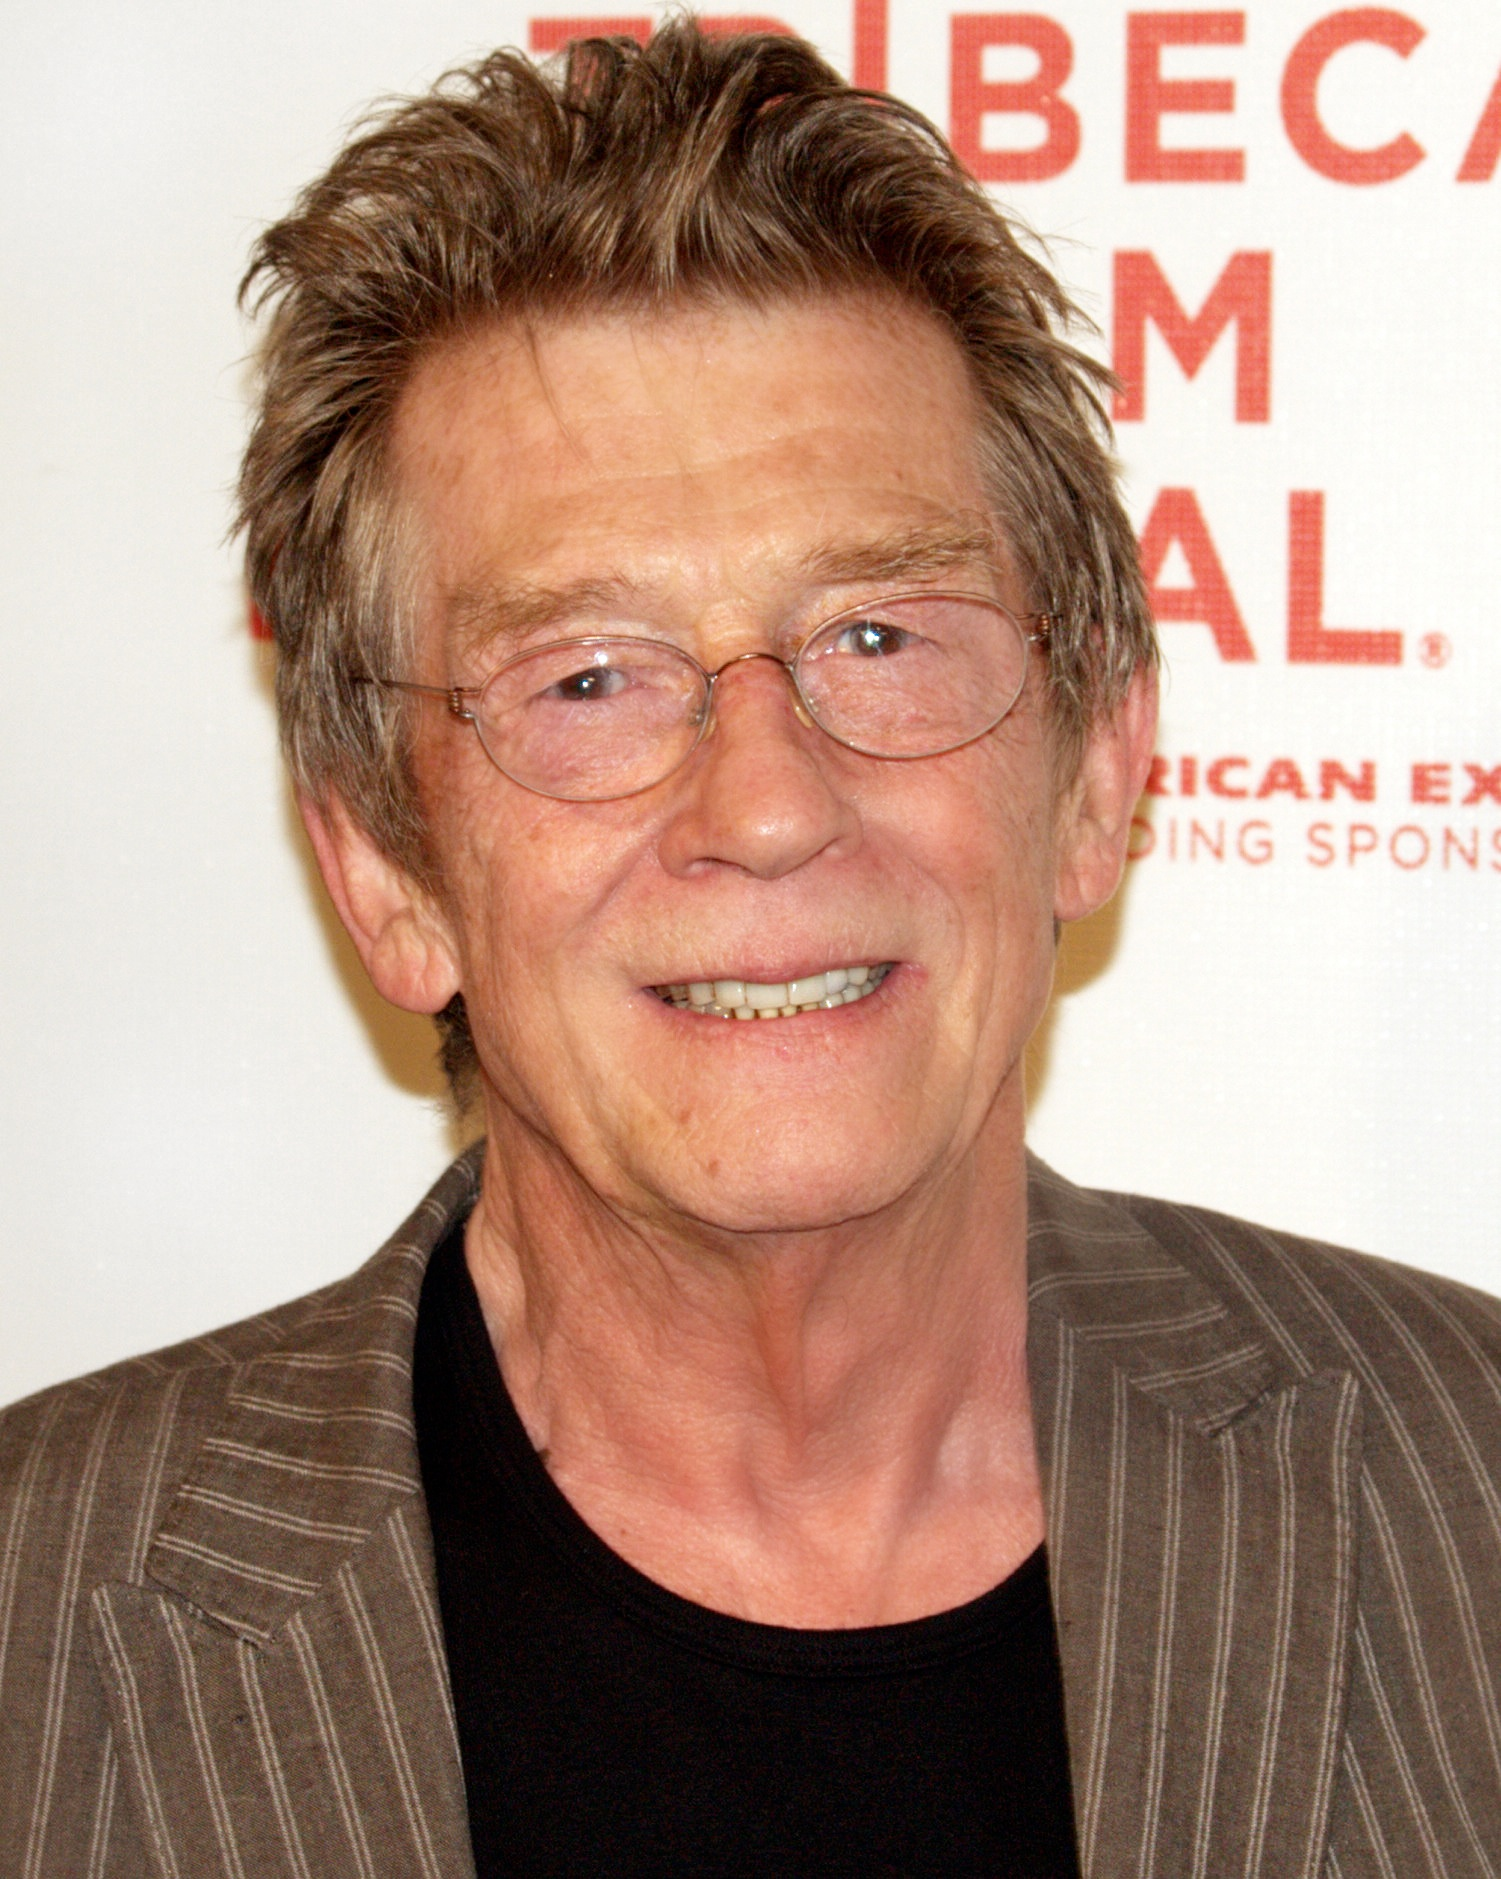 http://upload.wikimedia.org/wikipedia/commons/8/82/John_Hurt_at_the_2009_Tribeca_Film_Festival.jpg